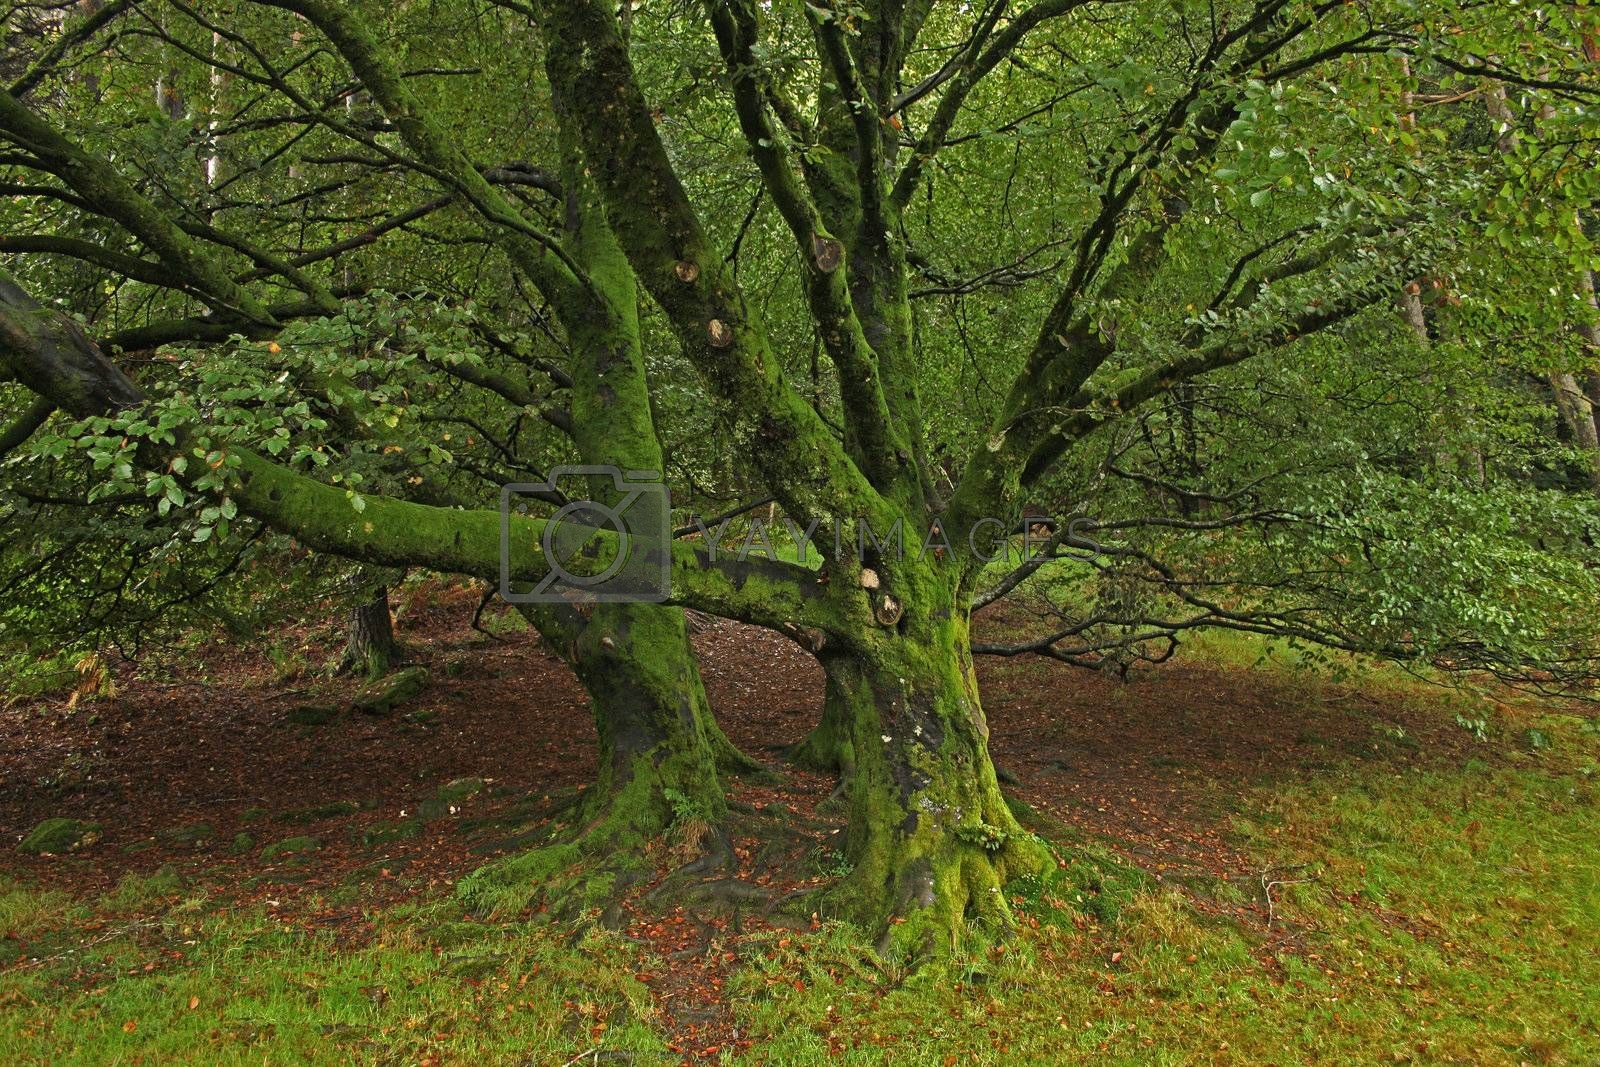 Old tree covered in green moss